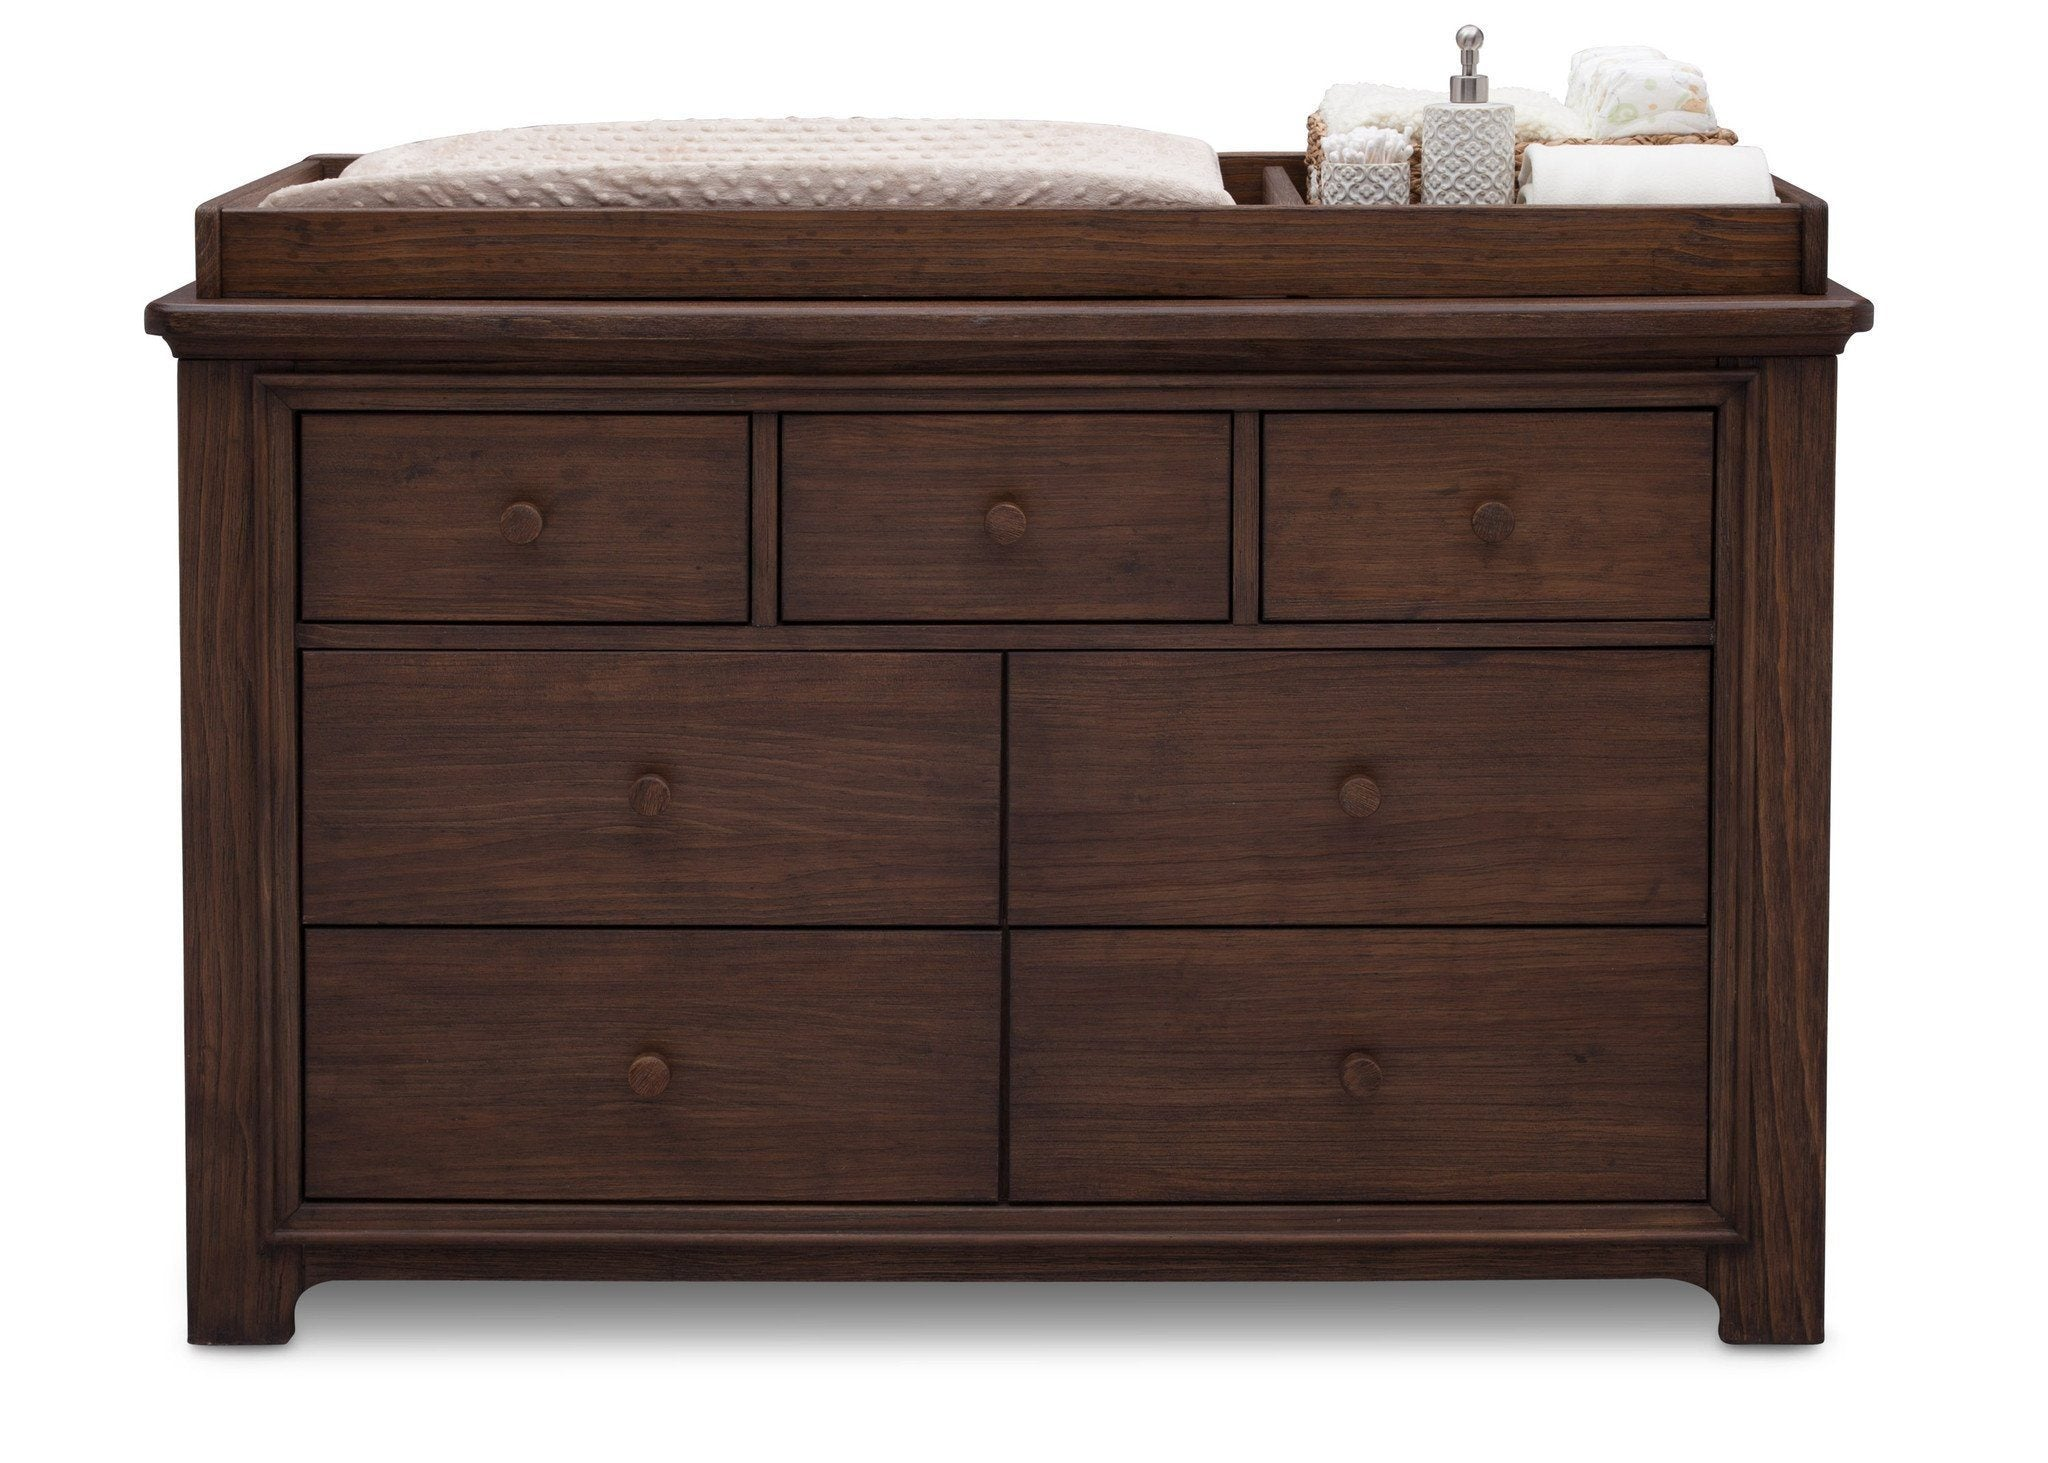 Serta Rustic Oak (229) Langley 7 Drawer Dresser, Front View with Props c3c